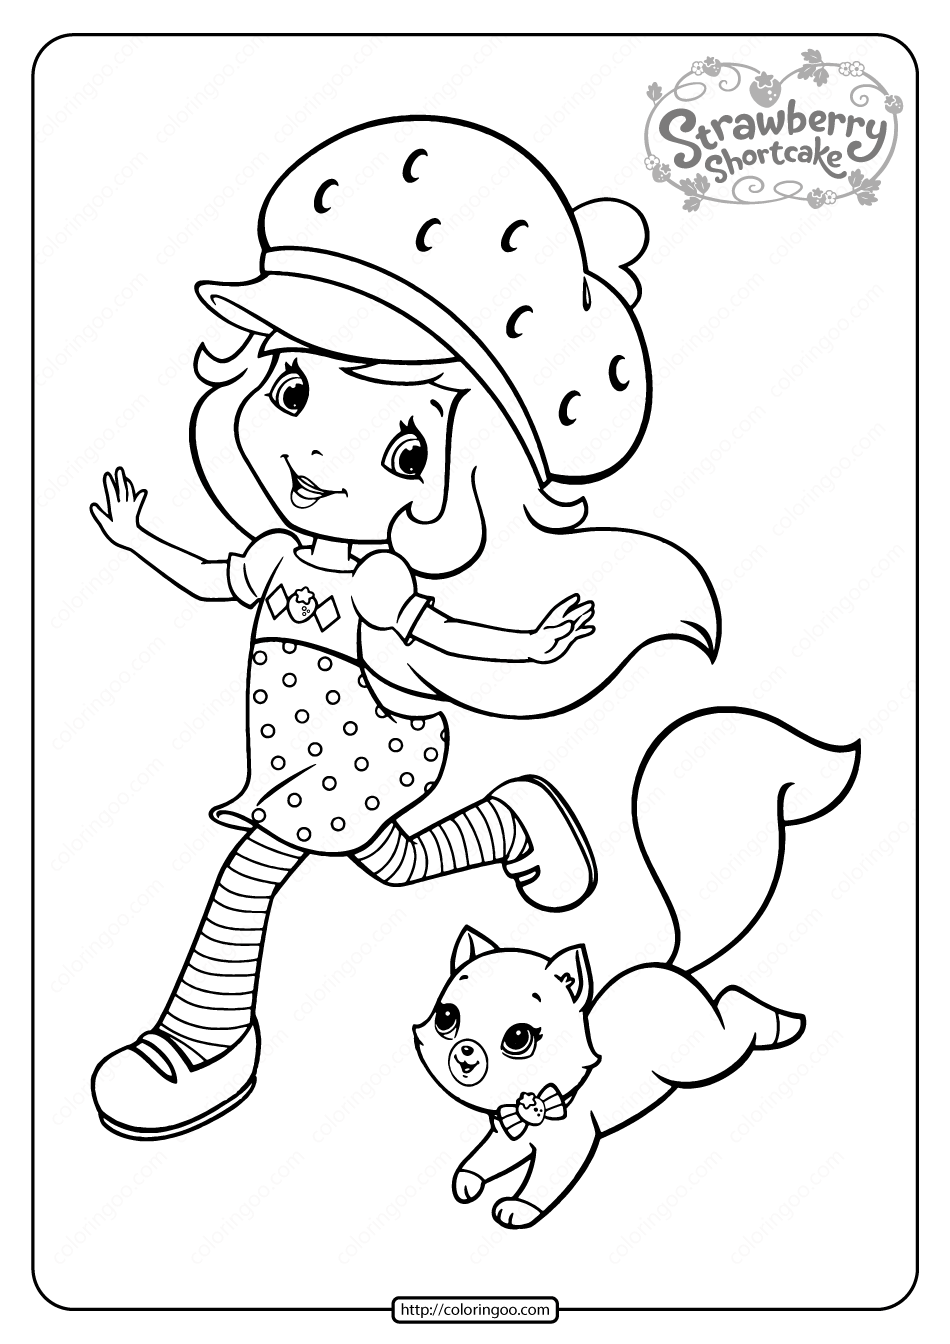 Free Printable Strawberry Shortcake Coloring Page 03